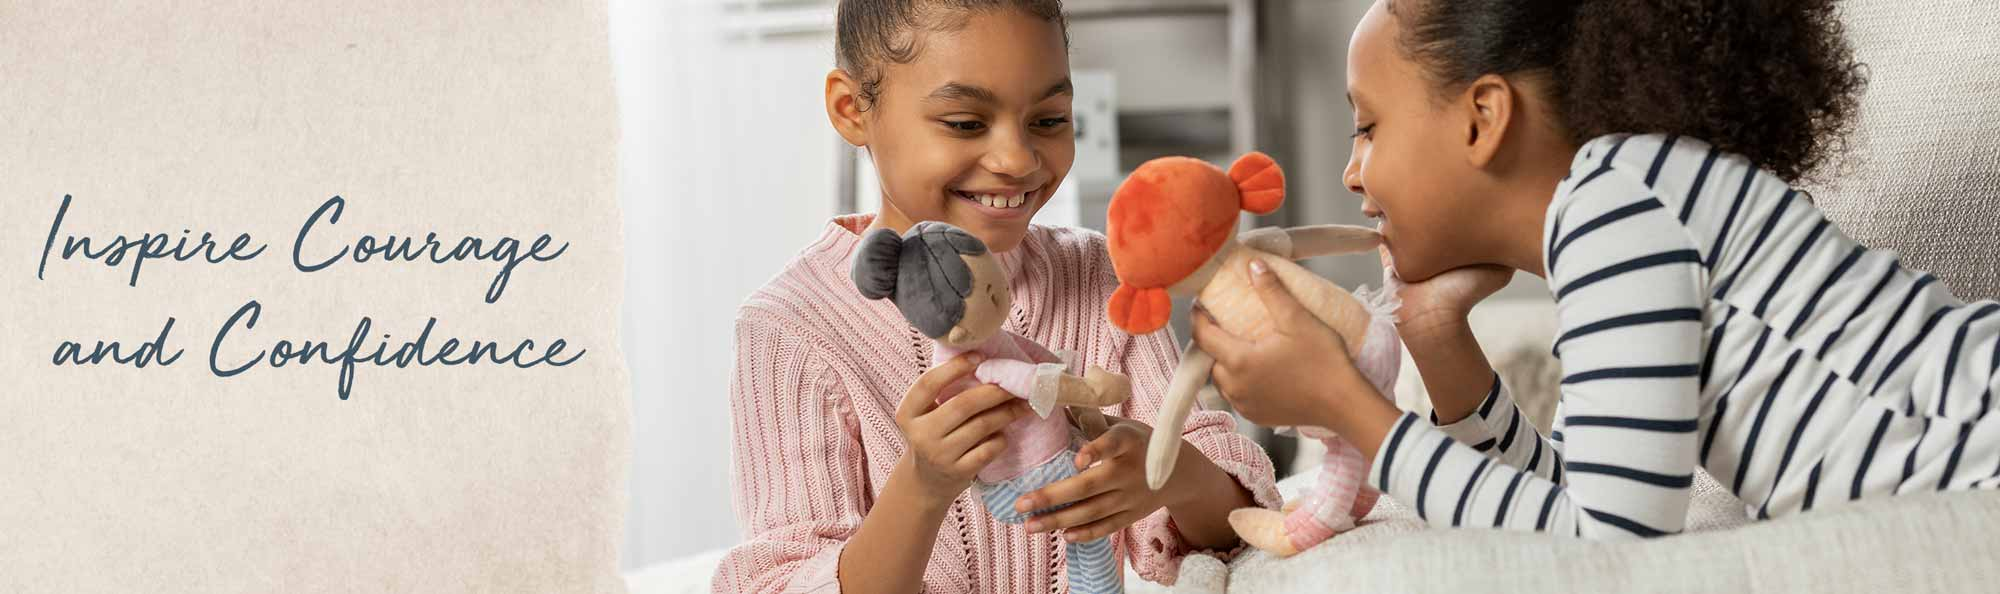 Inspire Courage and Confidence. Young girl playing with a soft doll that looks like her.